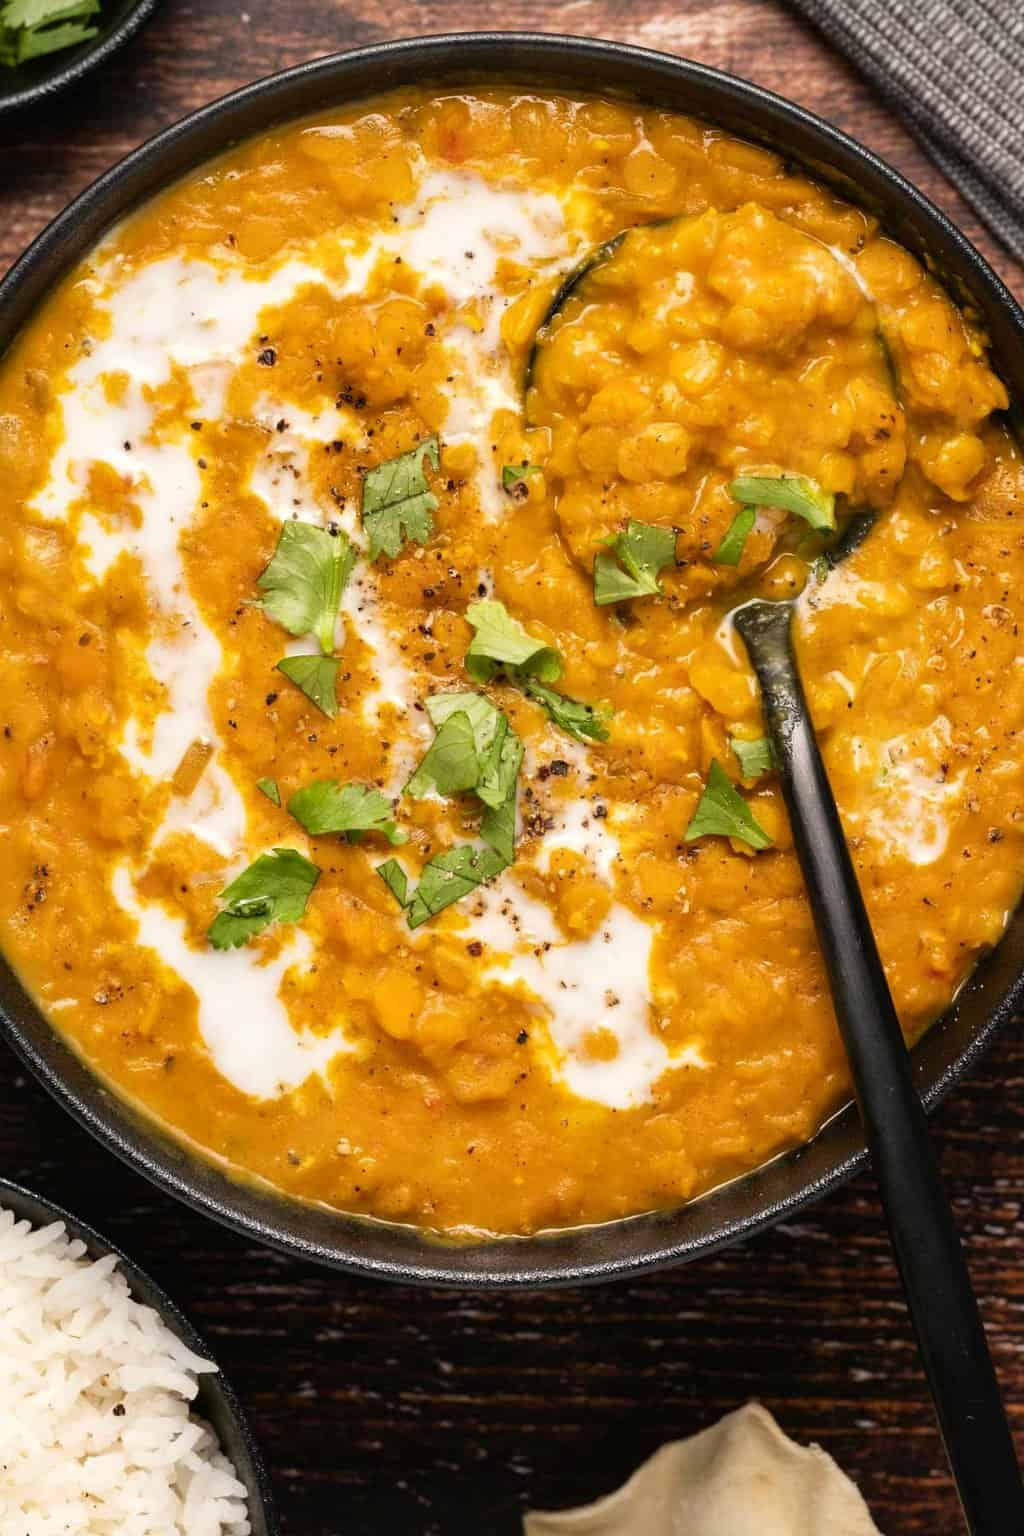 Lentil dal in a black bowl with a spoon.